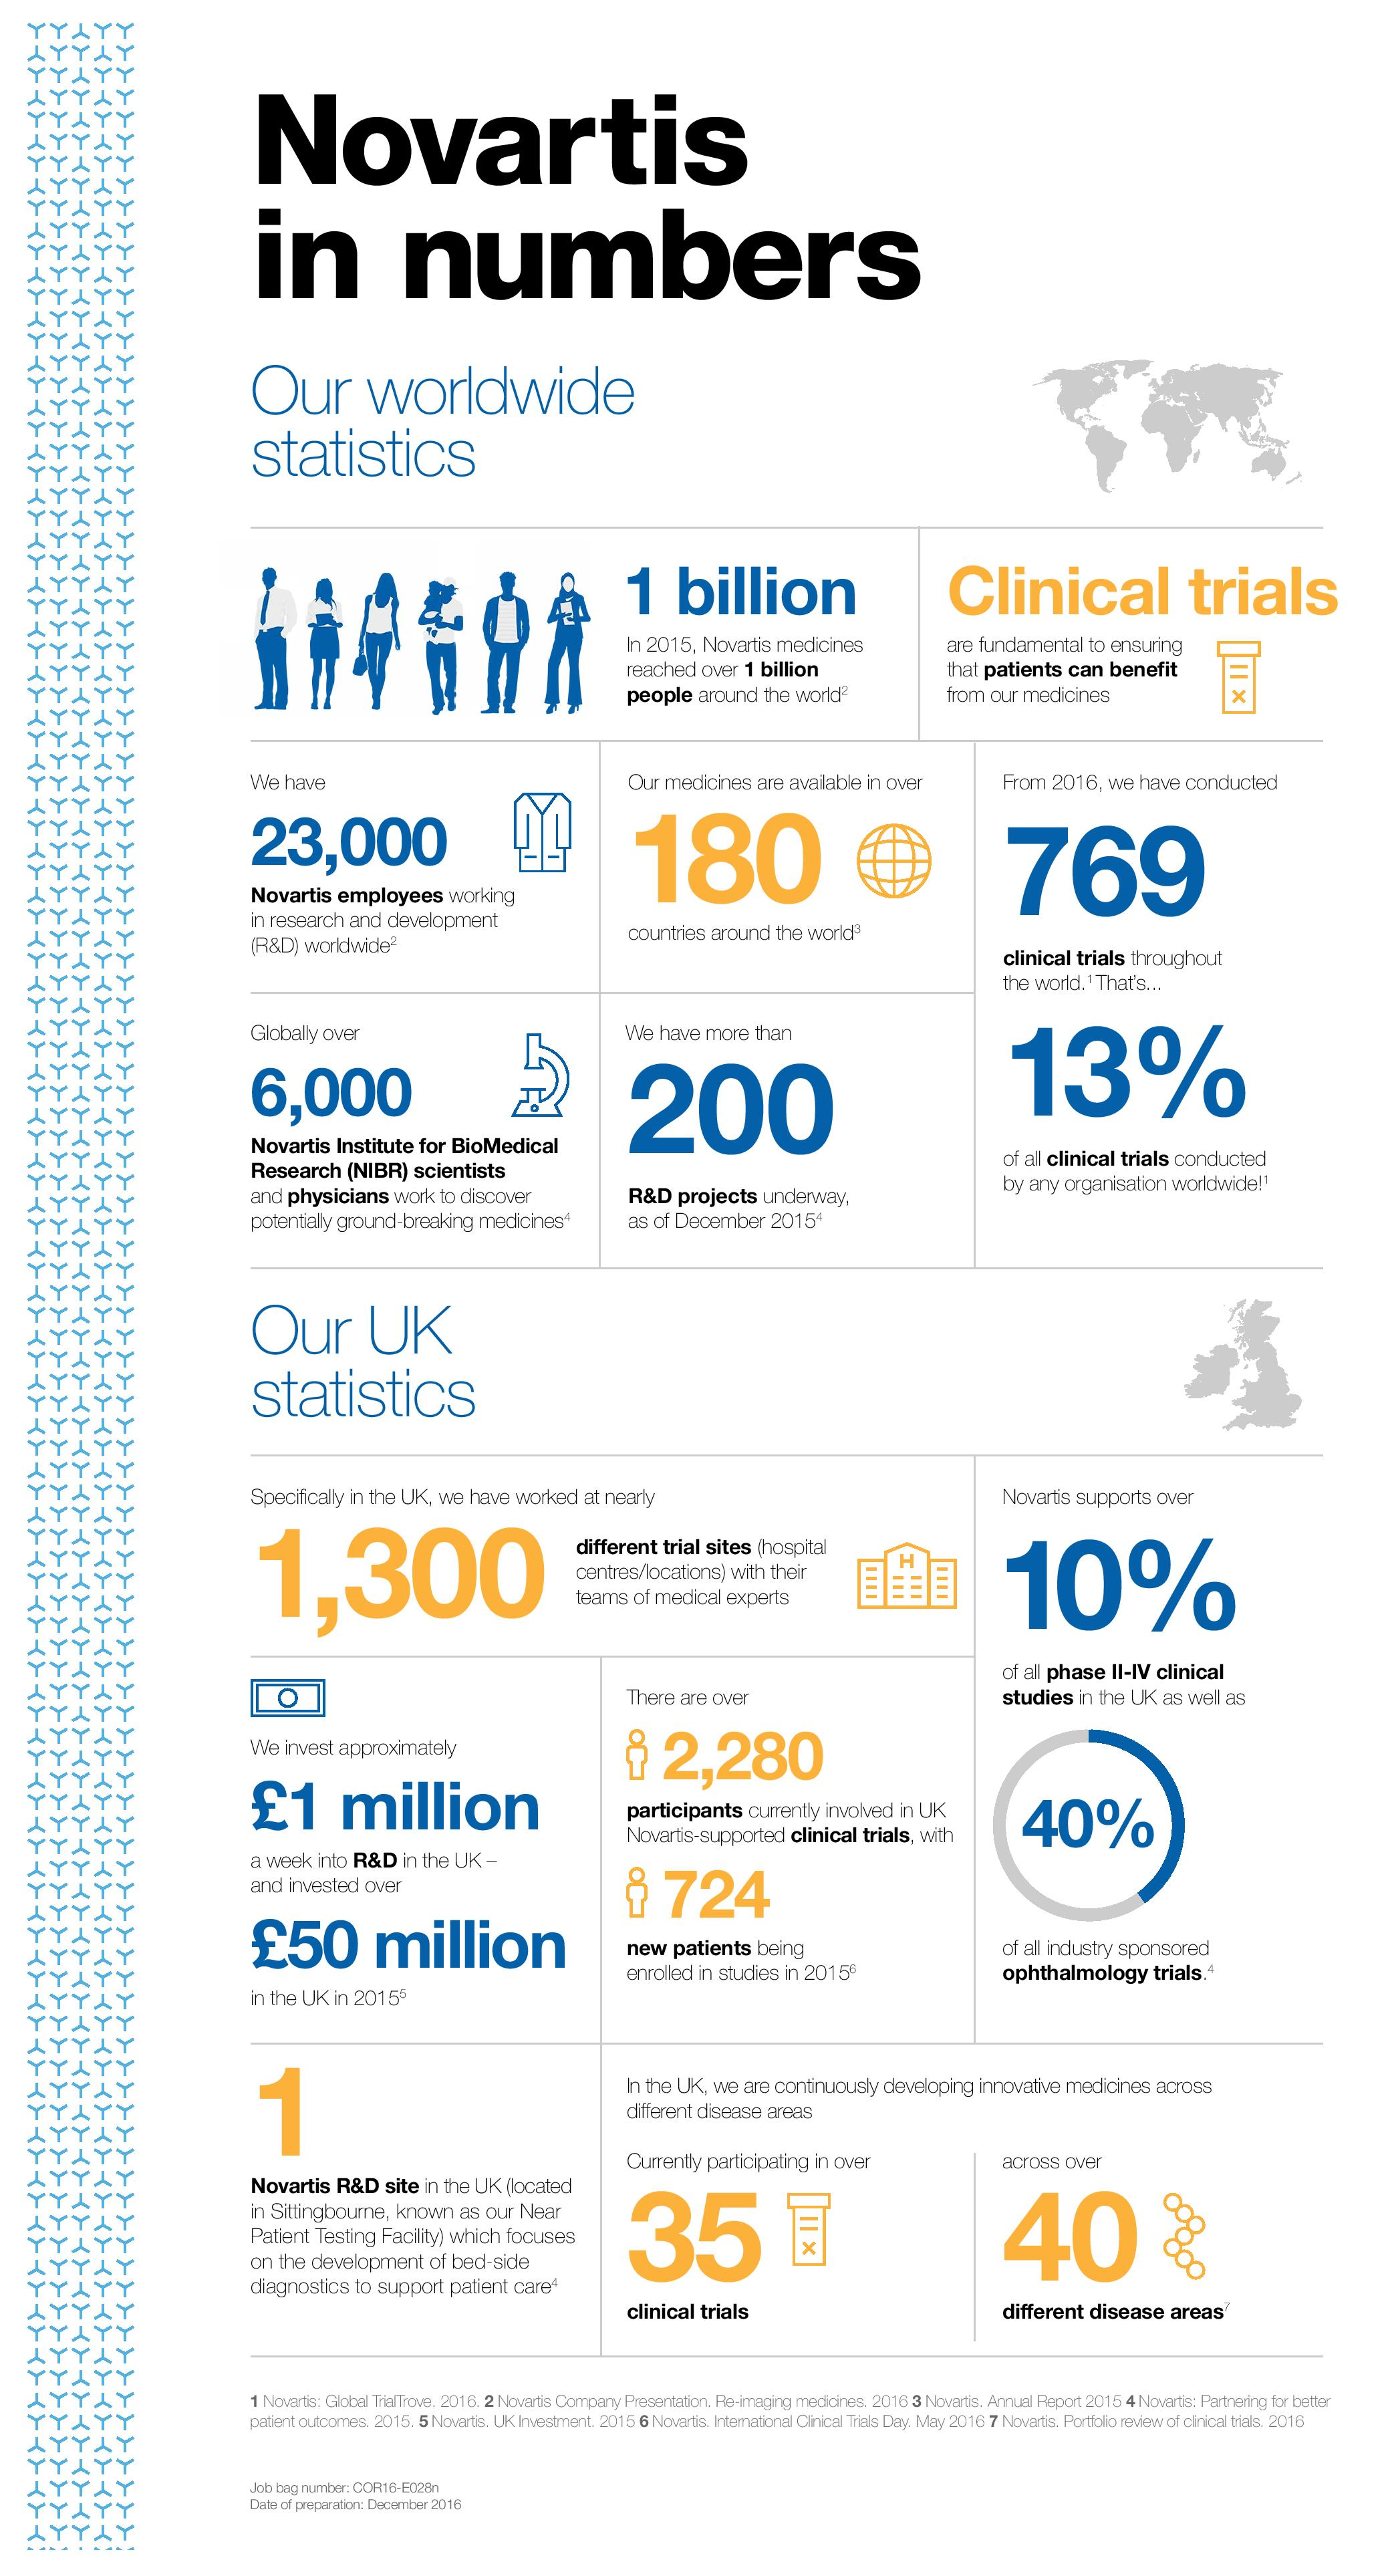 novartis-in-numbers-image